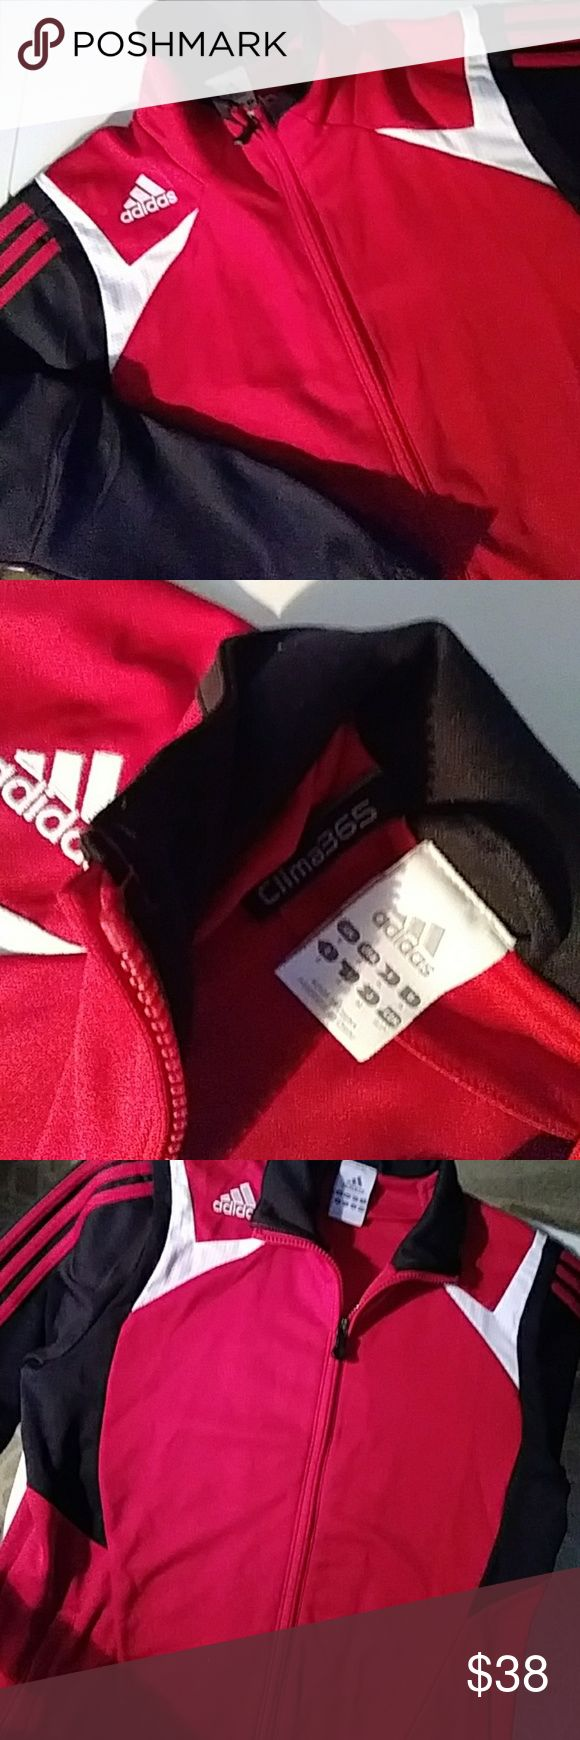 "🆕LIST💯ADIDAS zip-up training jacket Red, black and white. Pre-loved but it EUC..excellent used condition🎅  Perfect for your athlete or for the trend seeker. Timeless and forever in style. Adidas quality you expect. Size small. Zip close pockets measures approx. 20"" pit to pit 17"" under armpit to bottom adidas Shirts Sweatshirts & Hoodies"